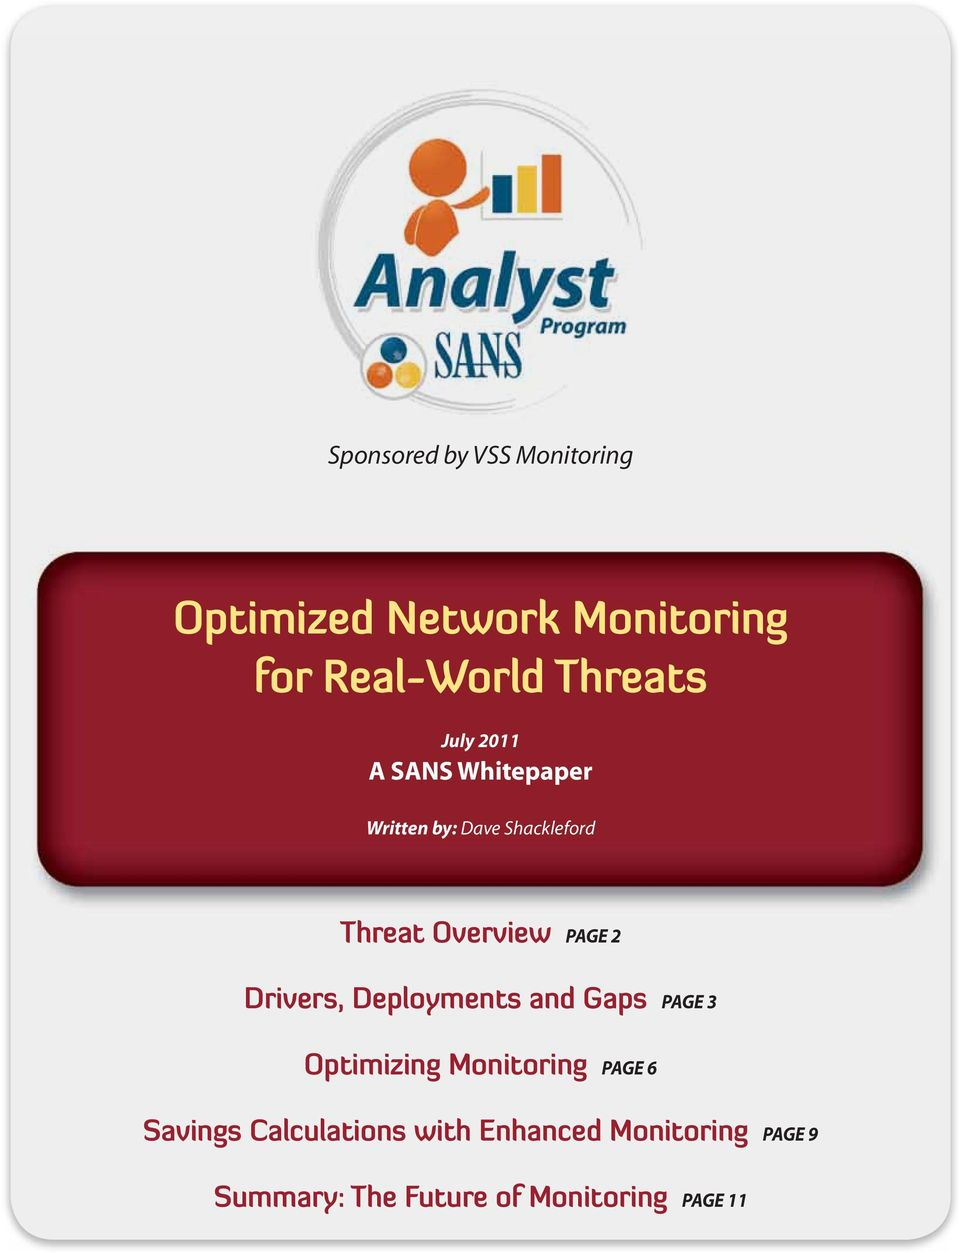 Drivers, Deployments and Gaps Page 3 Optimizing Monitoring Page 6 Savings